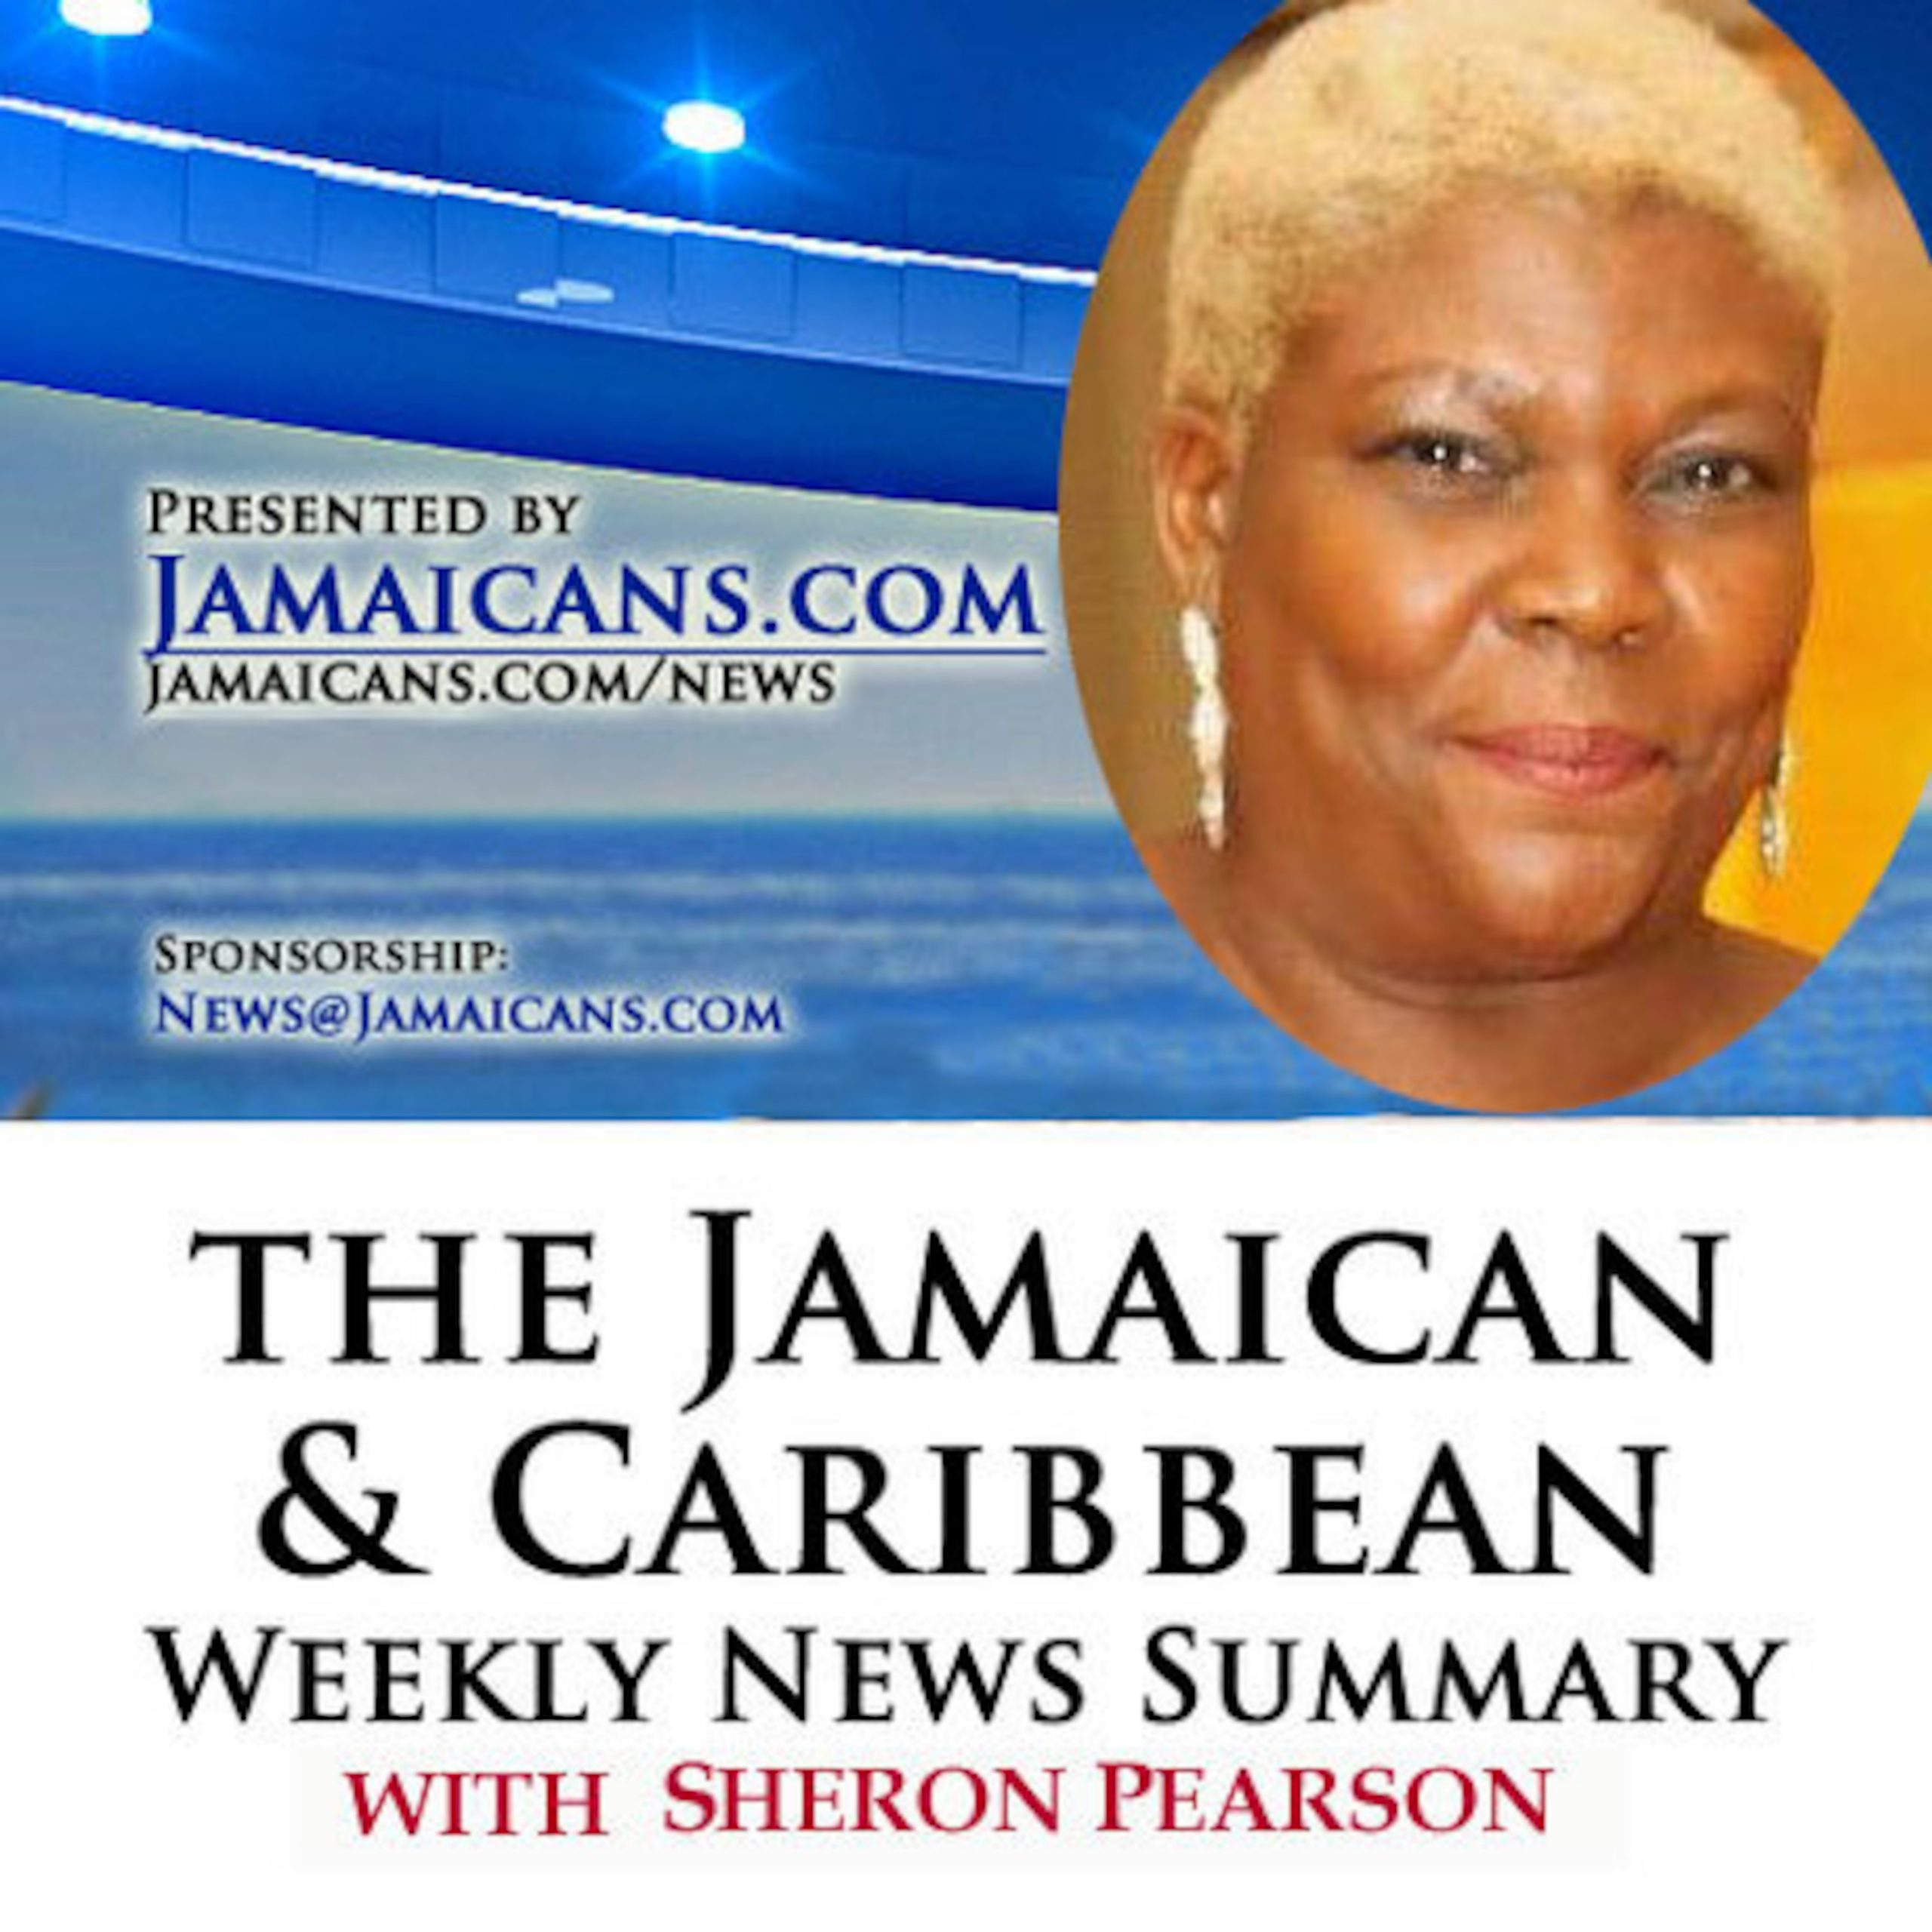 Listen to the Podcast of The Jamaica & Caribbean Weekly News Summary for the week ending March 6, 2020